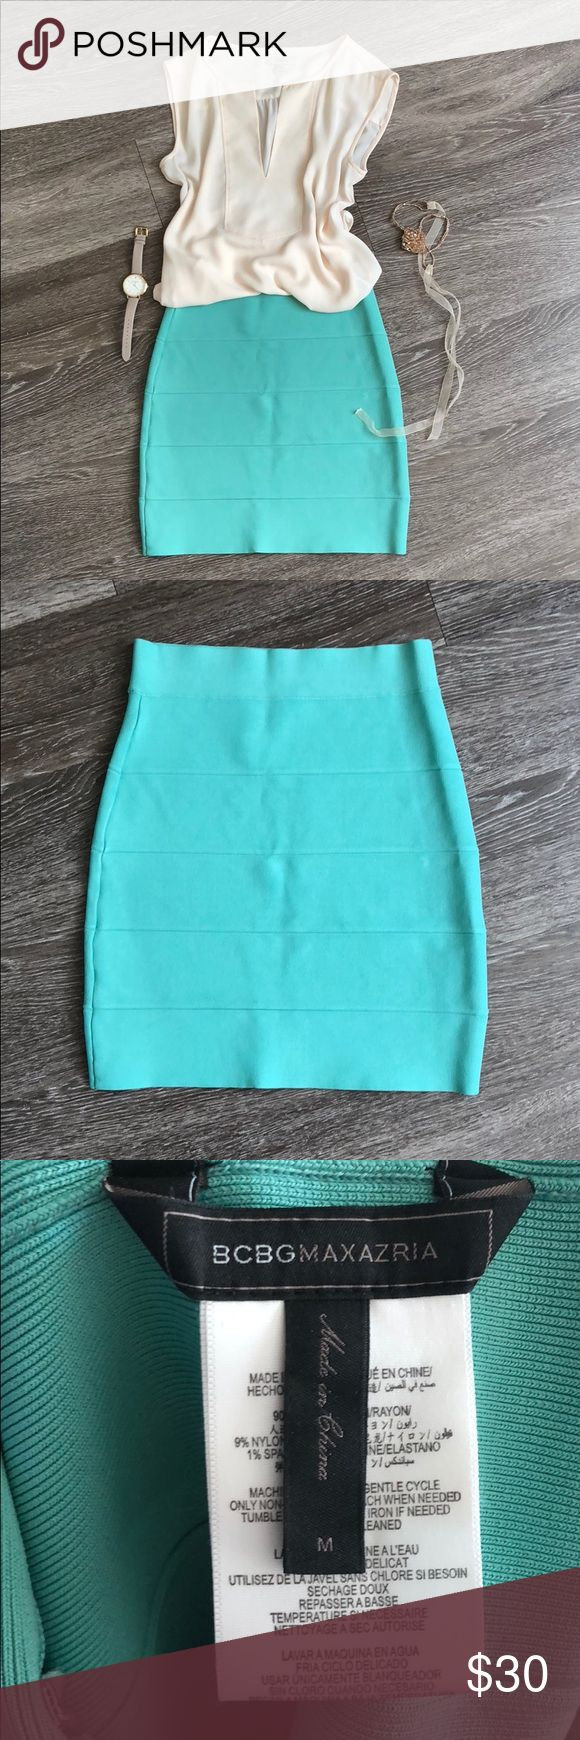 "BCBGMAXAZRIA Turquoise Tube Skirt Turquoise bodycon skirt from BCBGMAXAZRIA! It's only been worn once or twice, no flaws. It's a nice thick material, and very stretchy. The waist is about 12.5"" flat and it's about 18"" long. Size medium, but I'm usually a size small and it fits me. BCBGMaxAzria Skirts Mini"